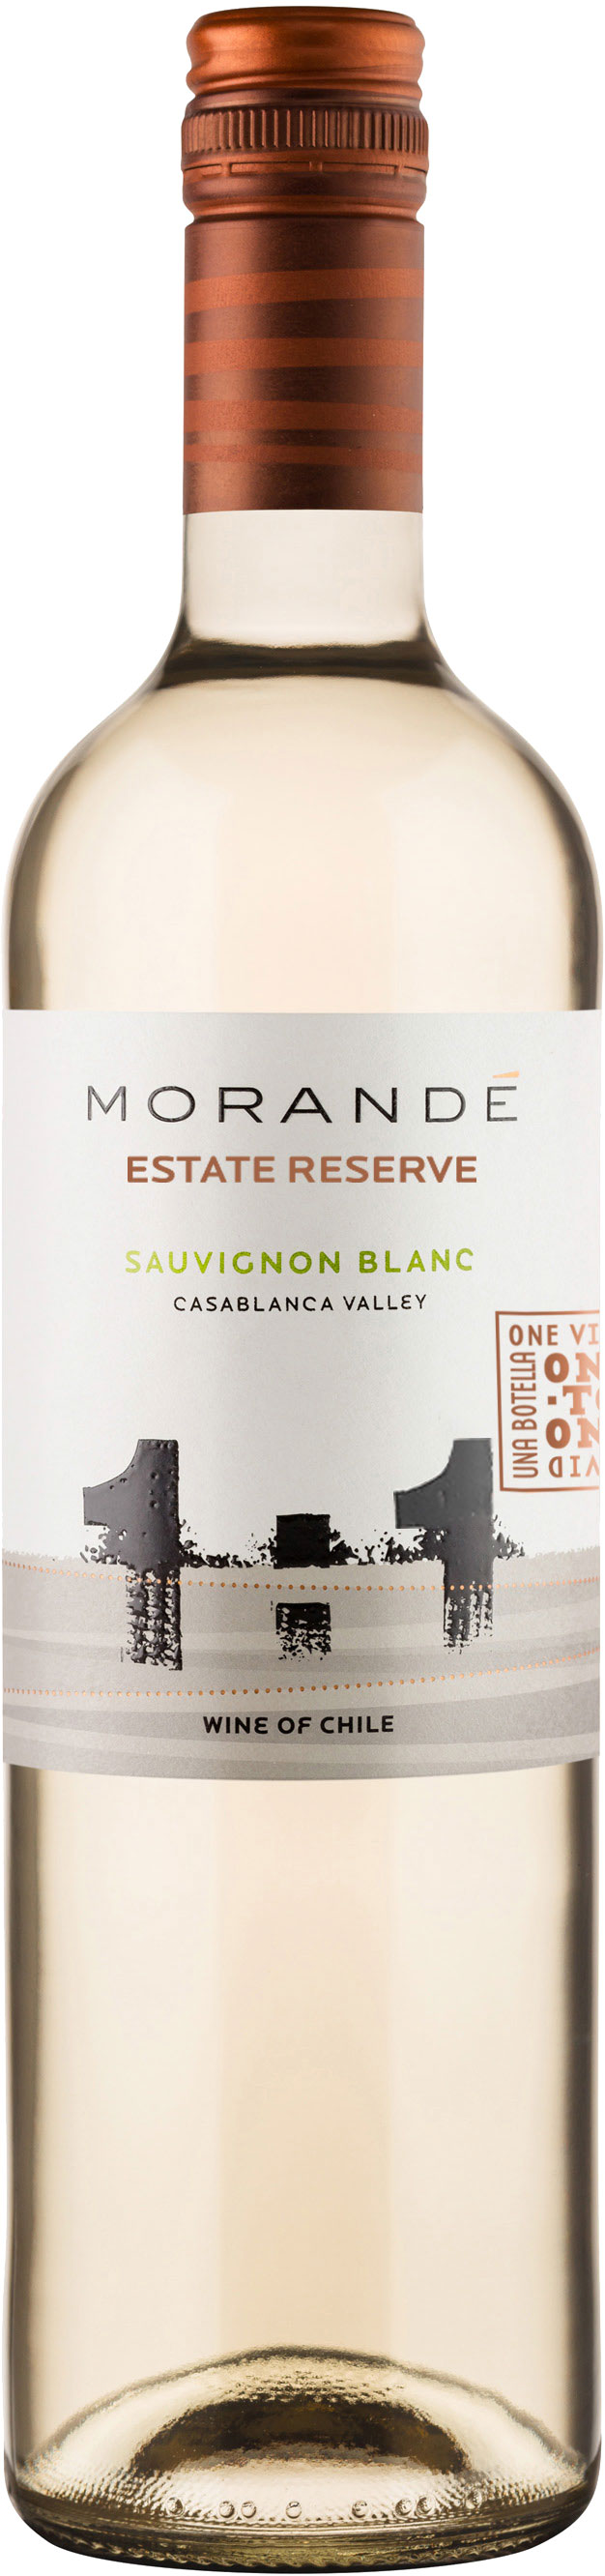 Morande - One To One Sauvignon Blanc Estate Reserve 2019 12x 75cl Bottles